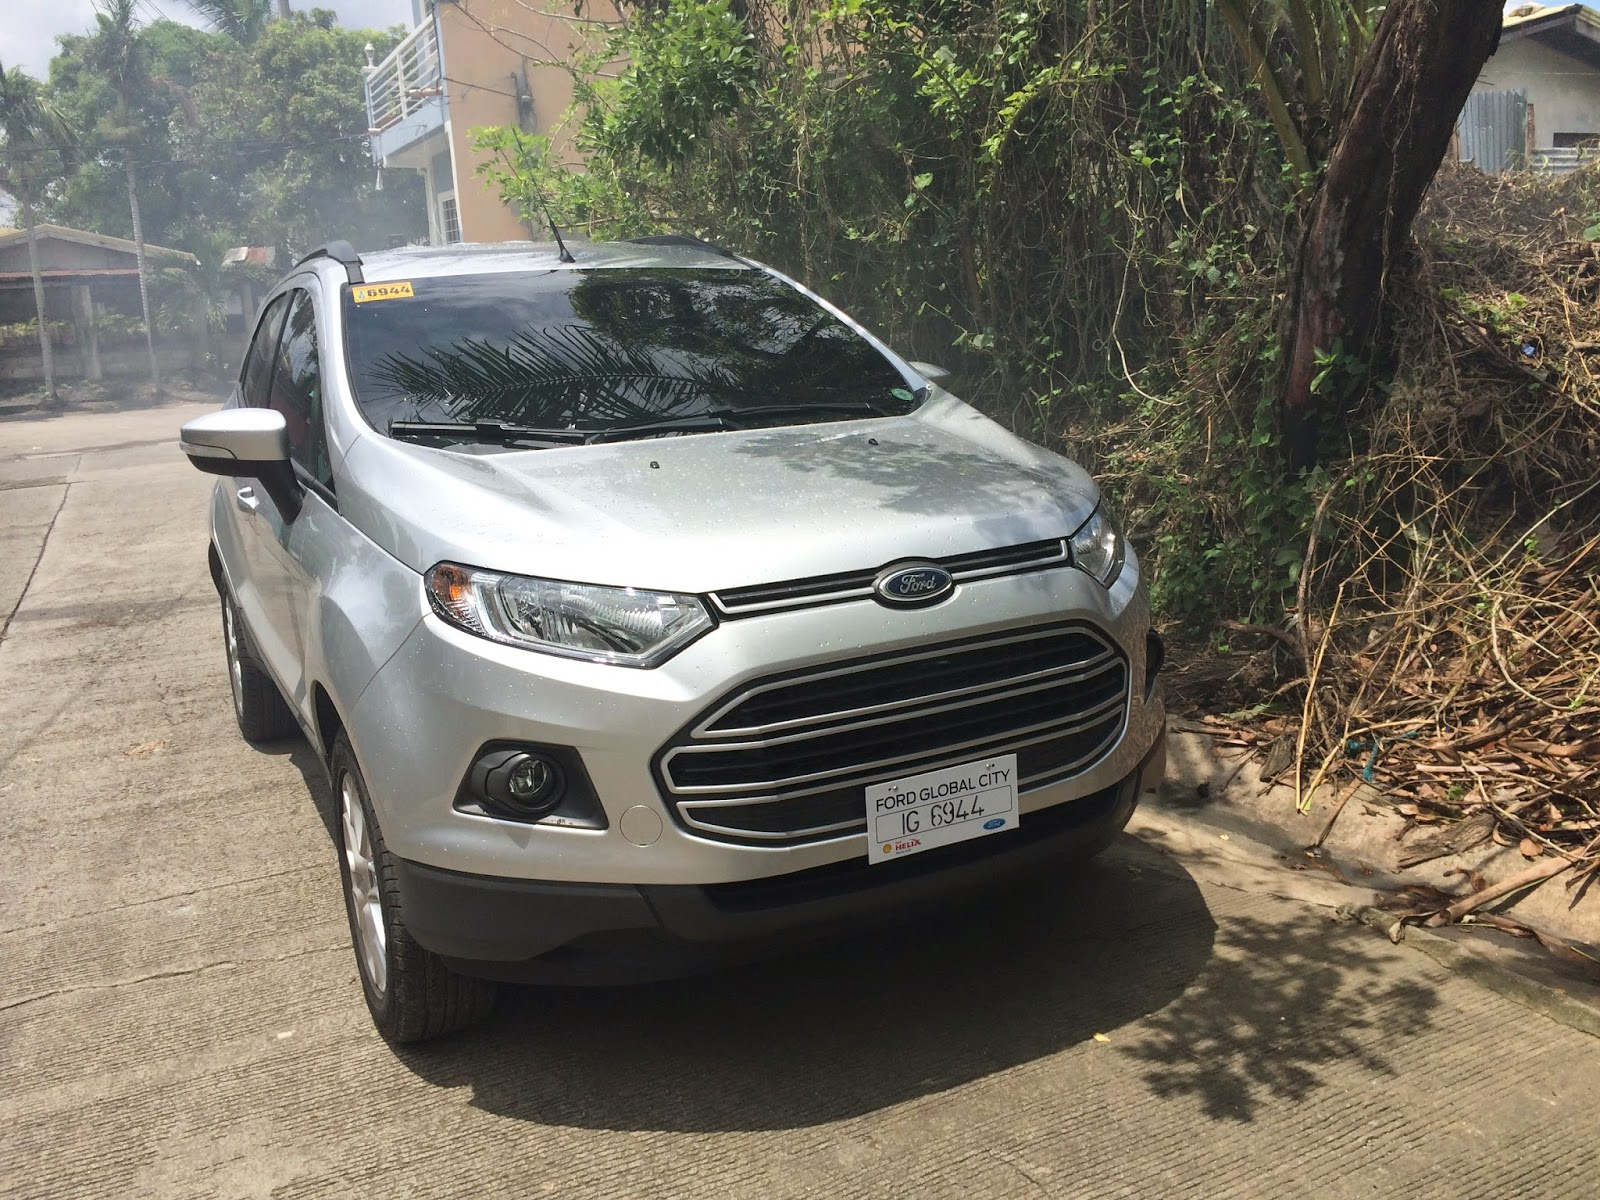 The Ground Clearance Is Very Good Mm Of Ground Clearance Enables The Vehicle To Wade Through Mm Of Flood The Air Intake Is Well Placed On The